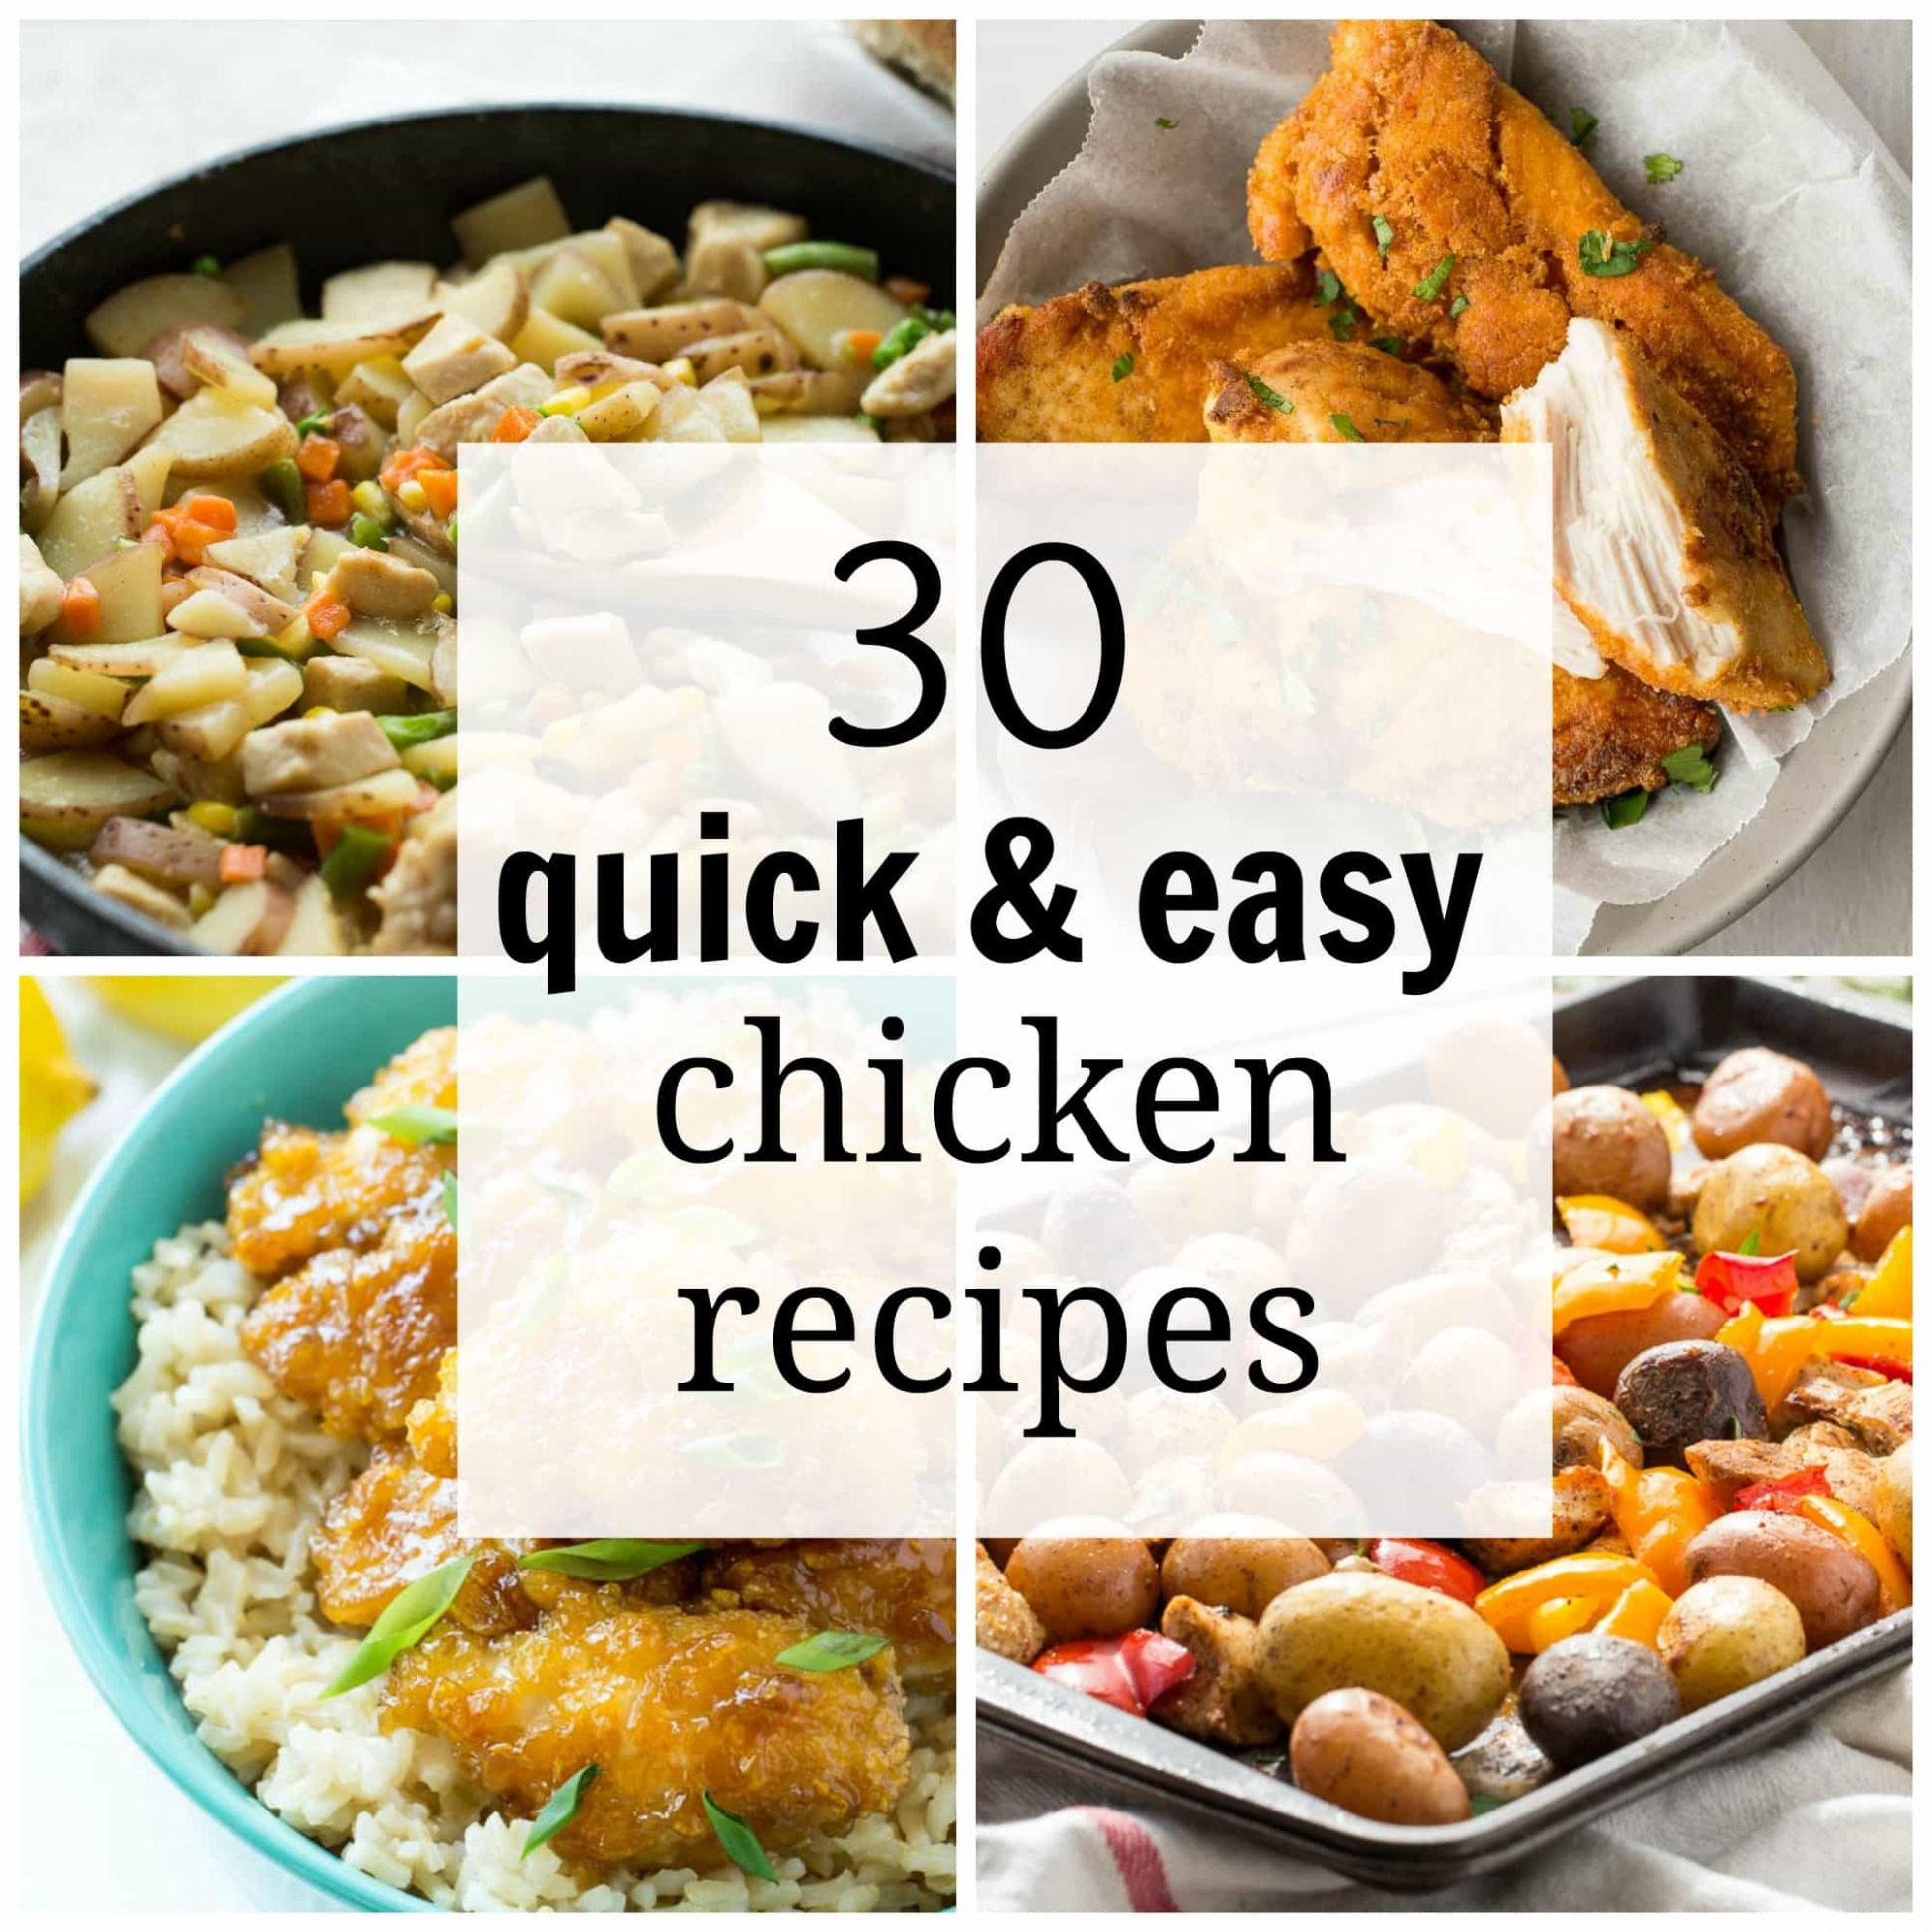 11 Quick and Easy Chicken Recipes for Busy Weeknights - Simple Recipes Quick